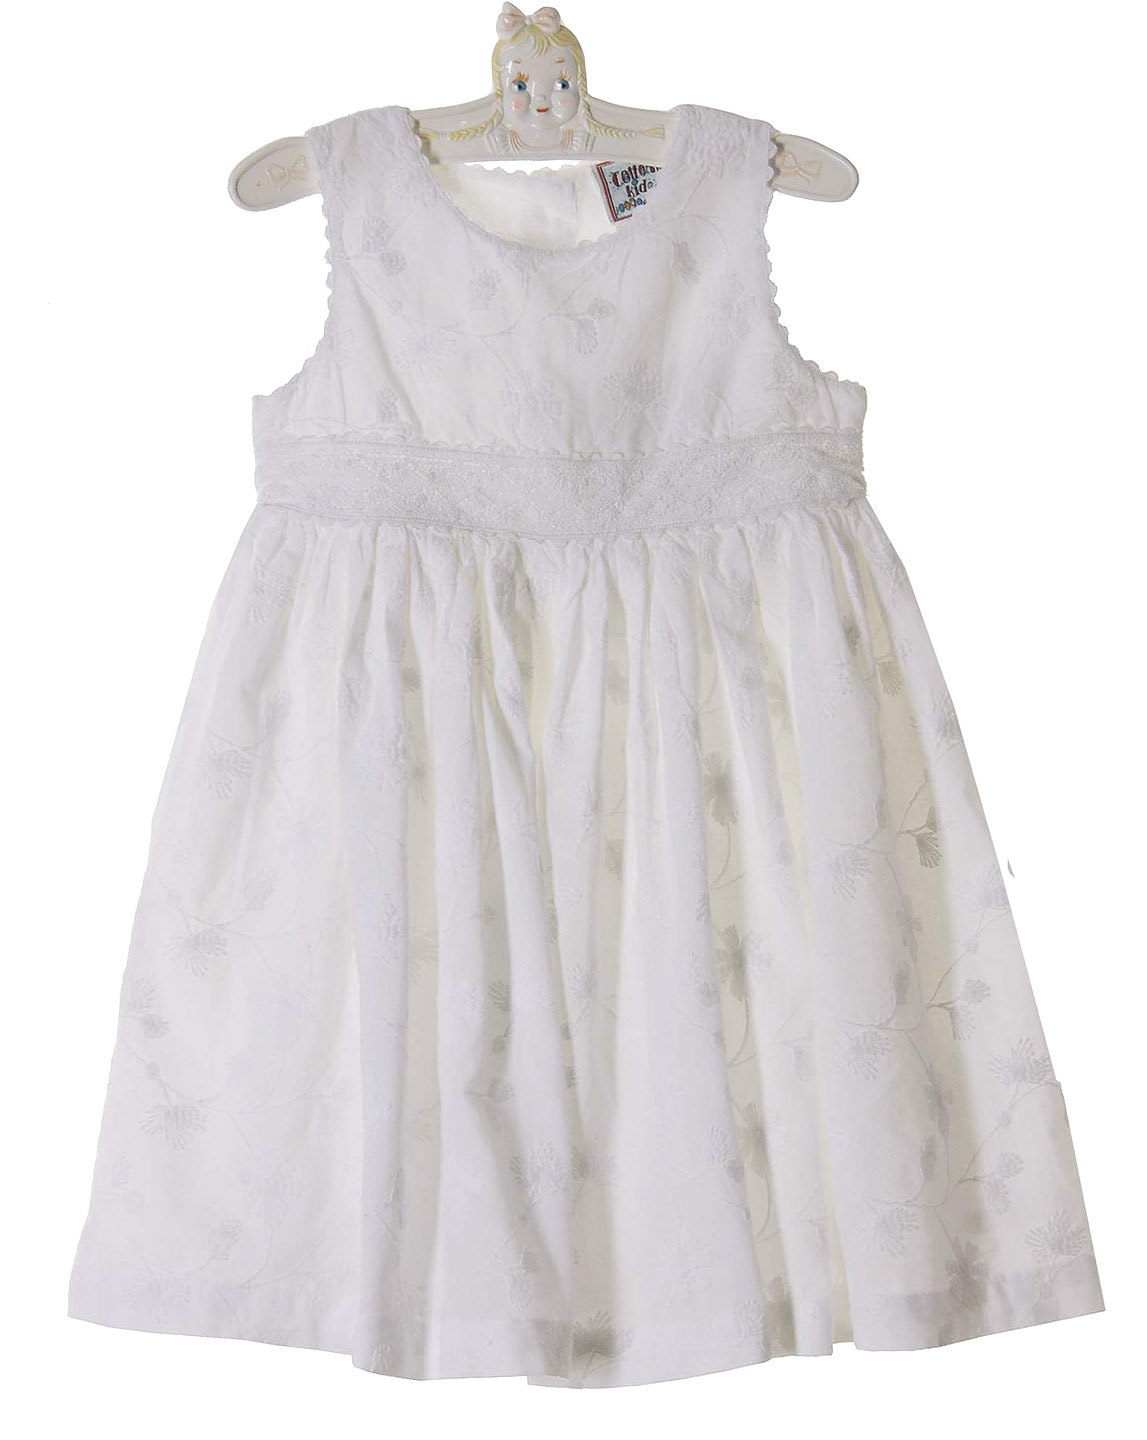 Cotton Kids white embroidered eyelet dress baby girls